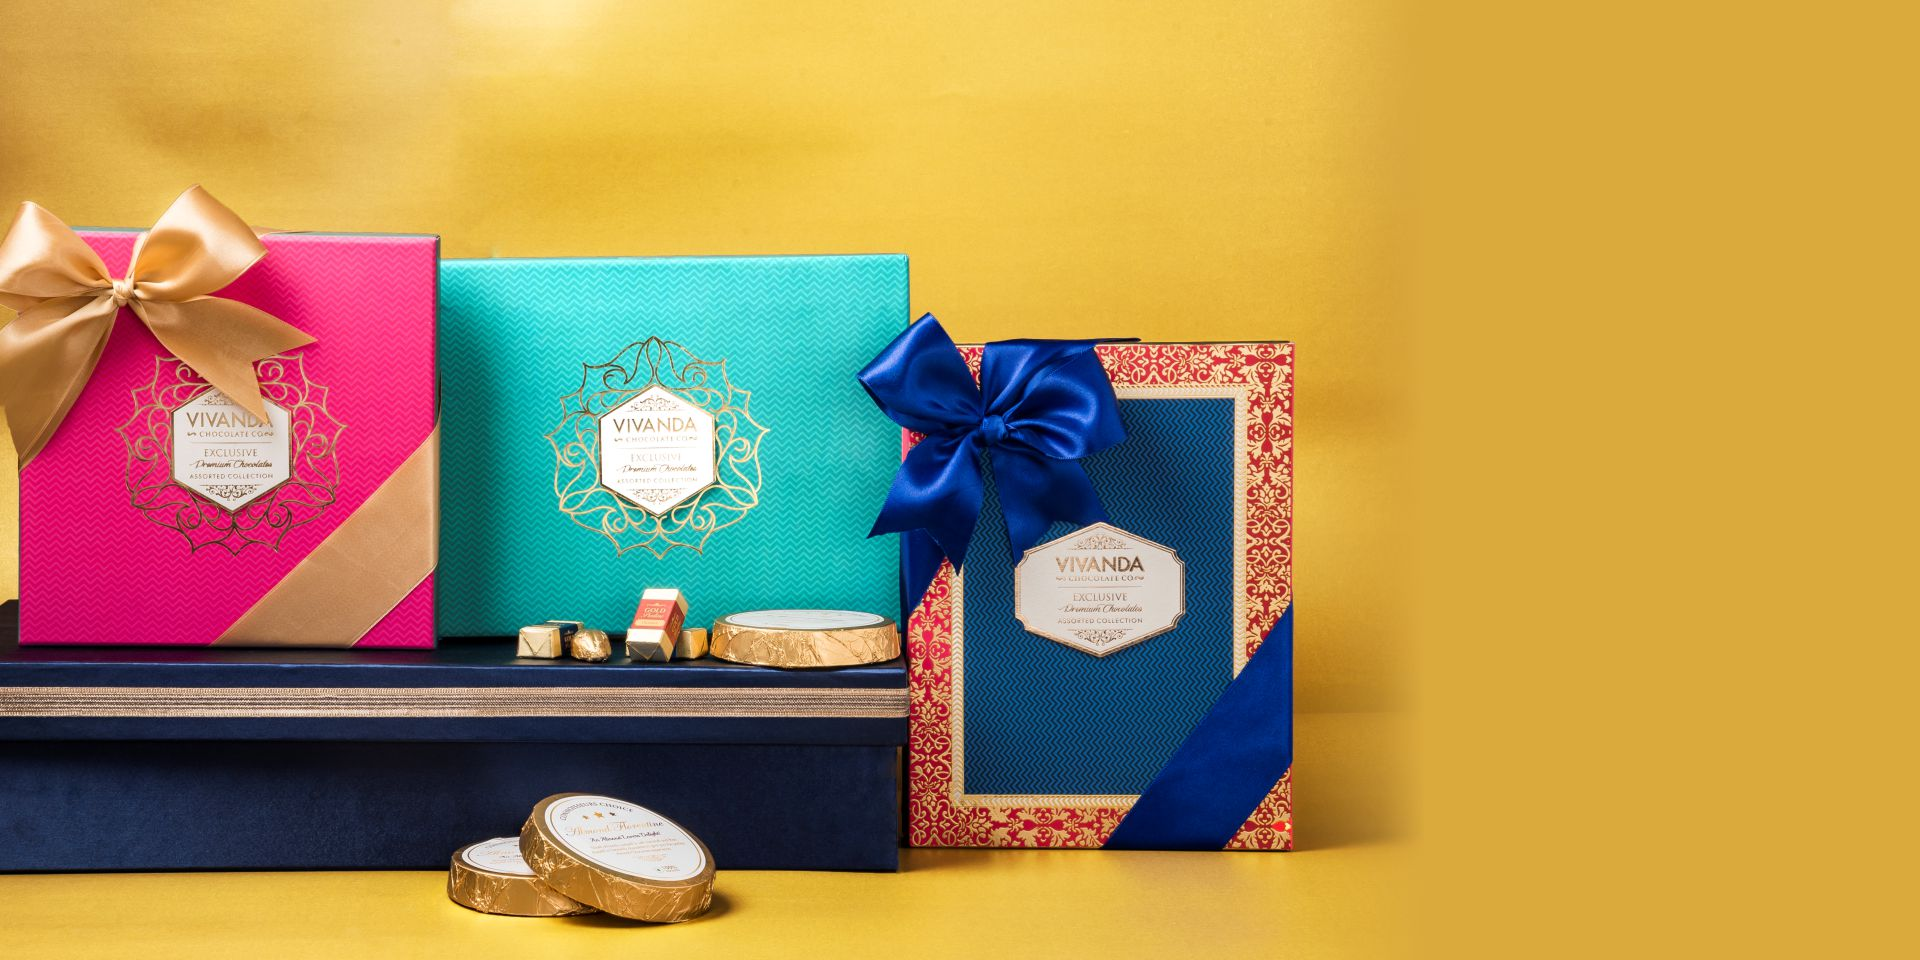 Vivanda Chocolate co.- For the Chocolate Connoisseurs Chocolates & Gifting